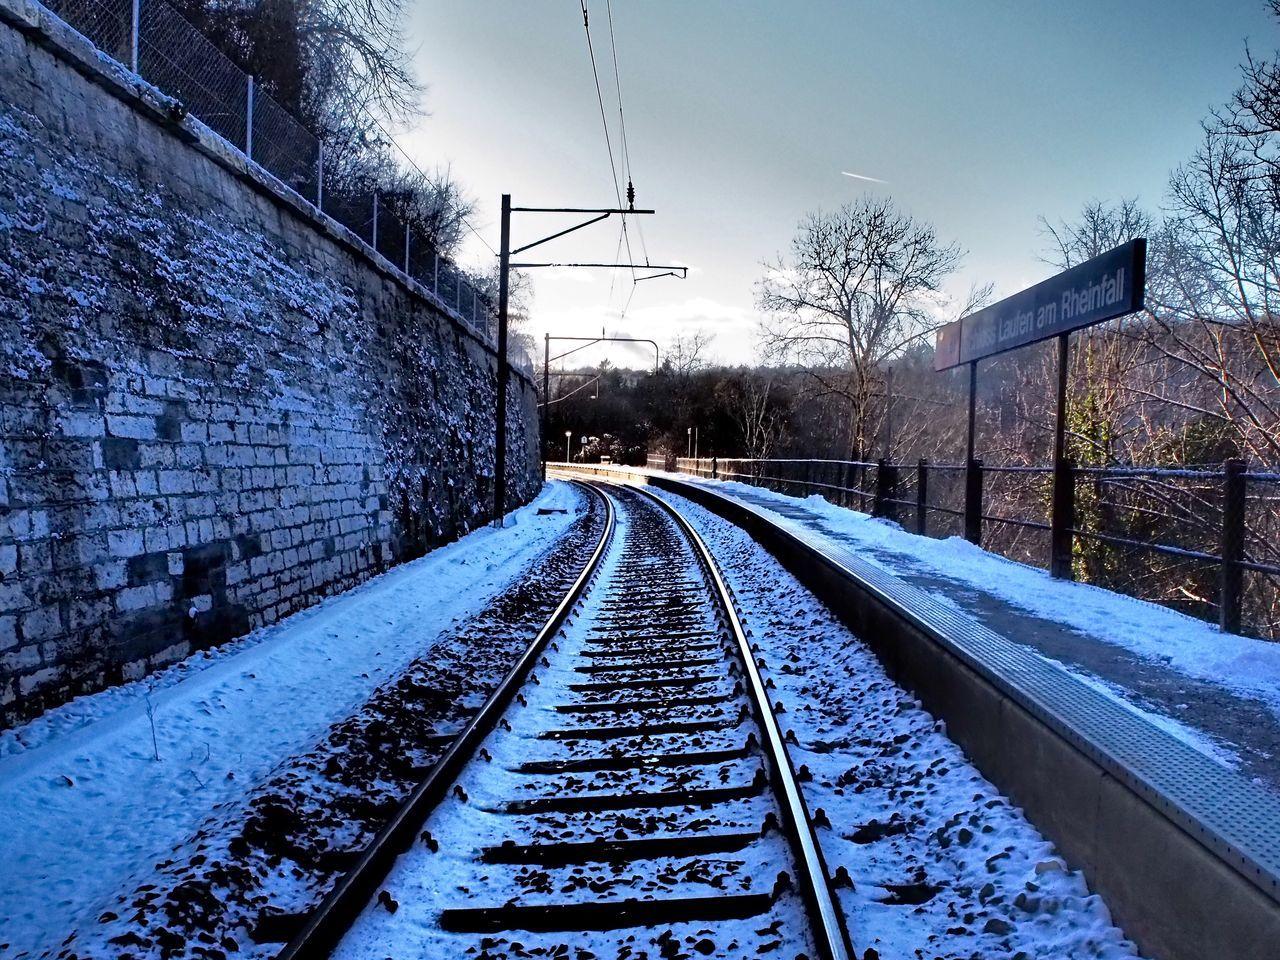 railroad track, rail transportation, cold temperature, transportation, snow, winter, no people, day, weather, railway track, the way forward, outdoors, built structure, bare tree, architecture, sky, tree, nature